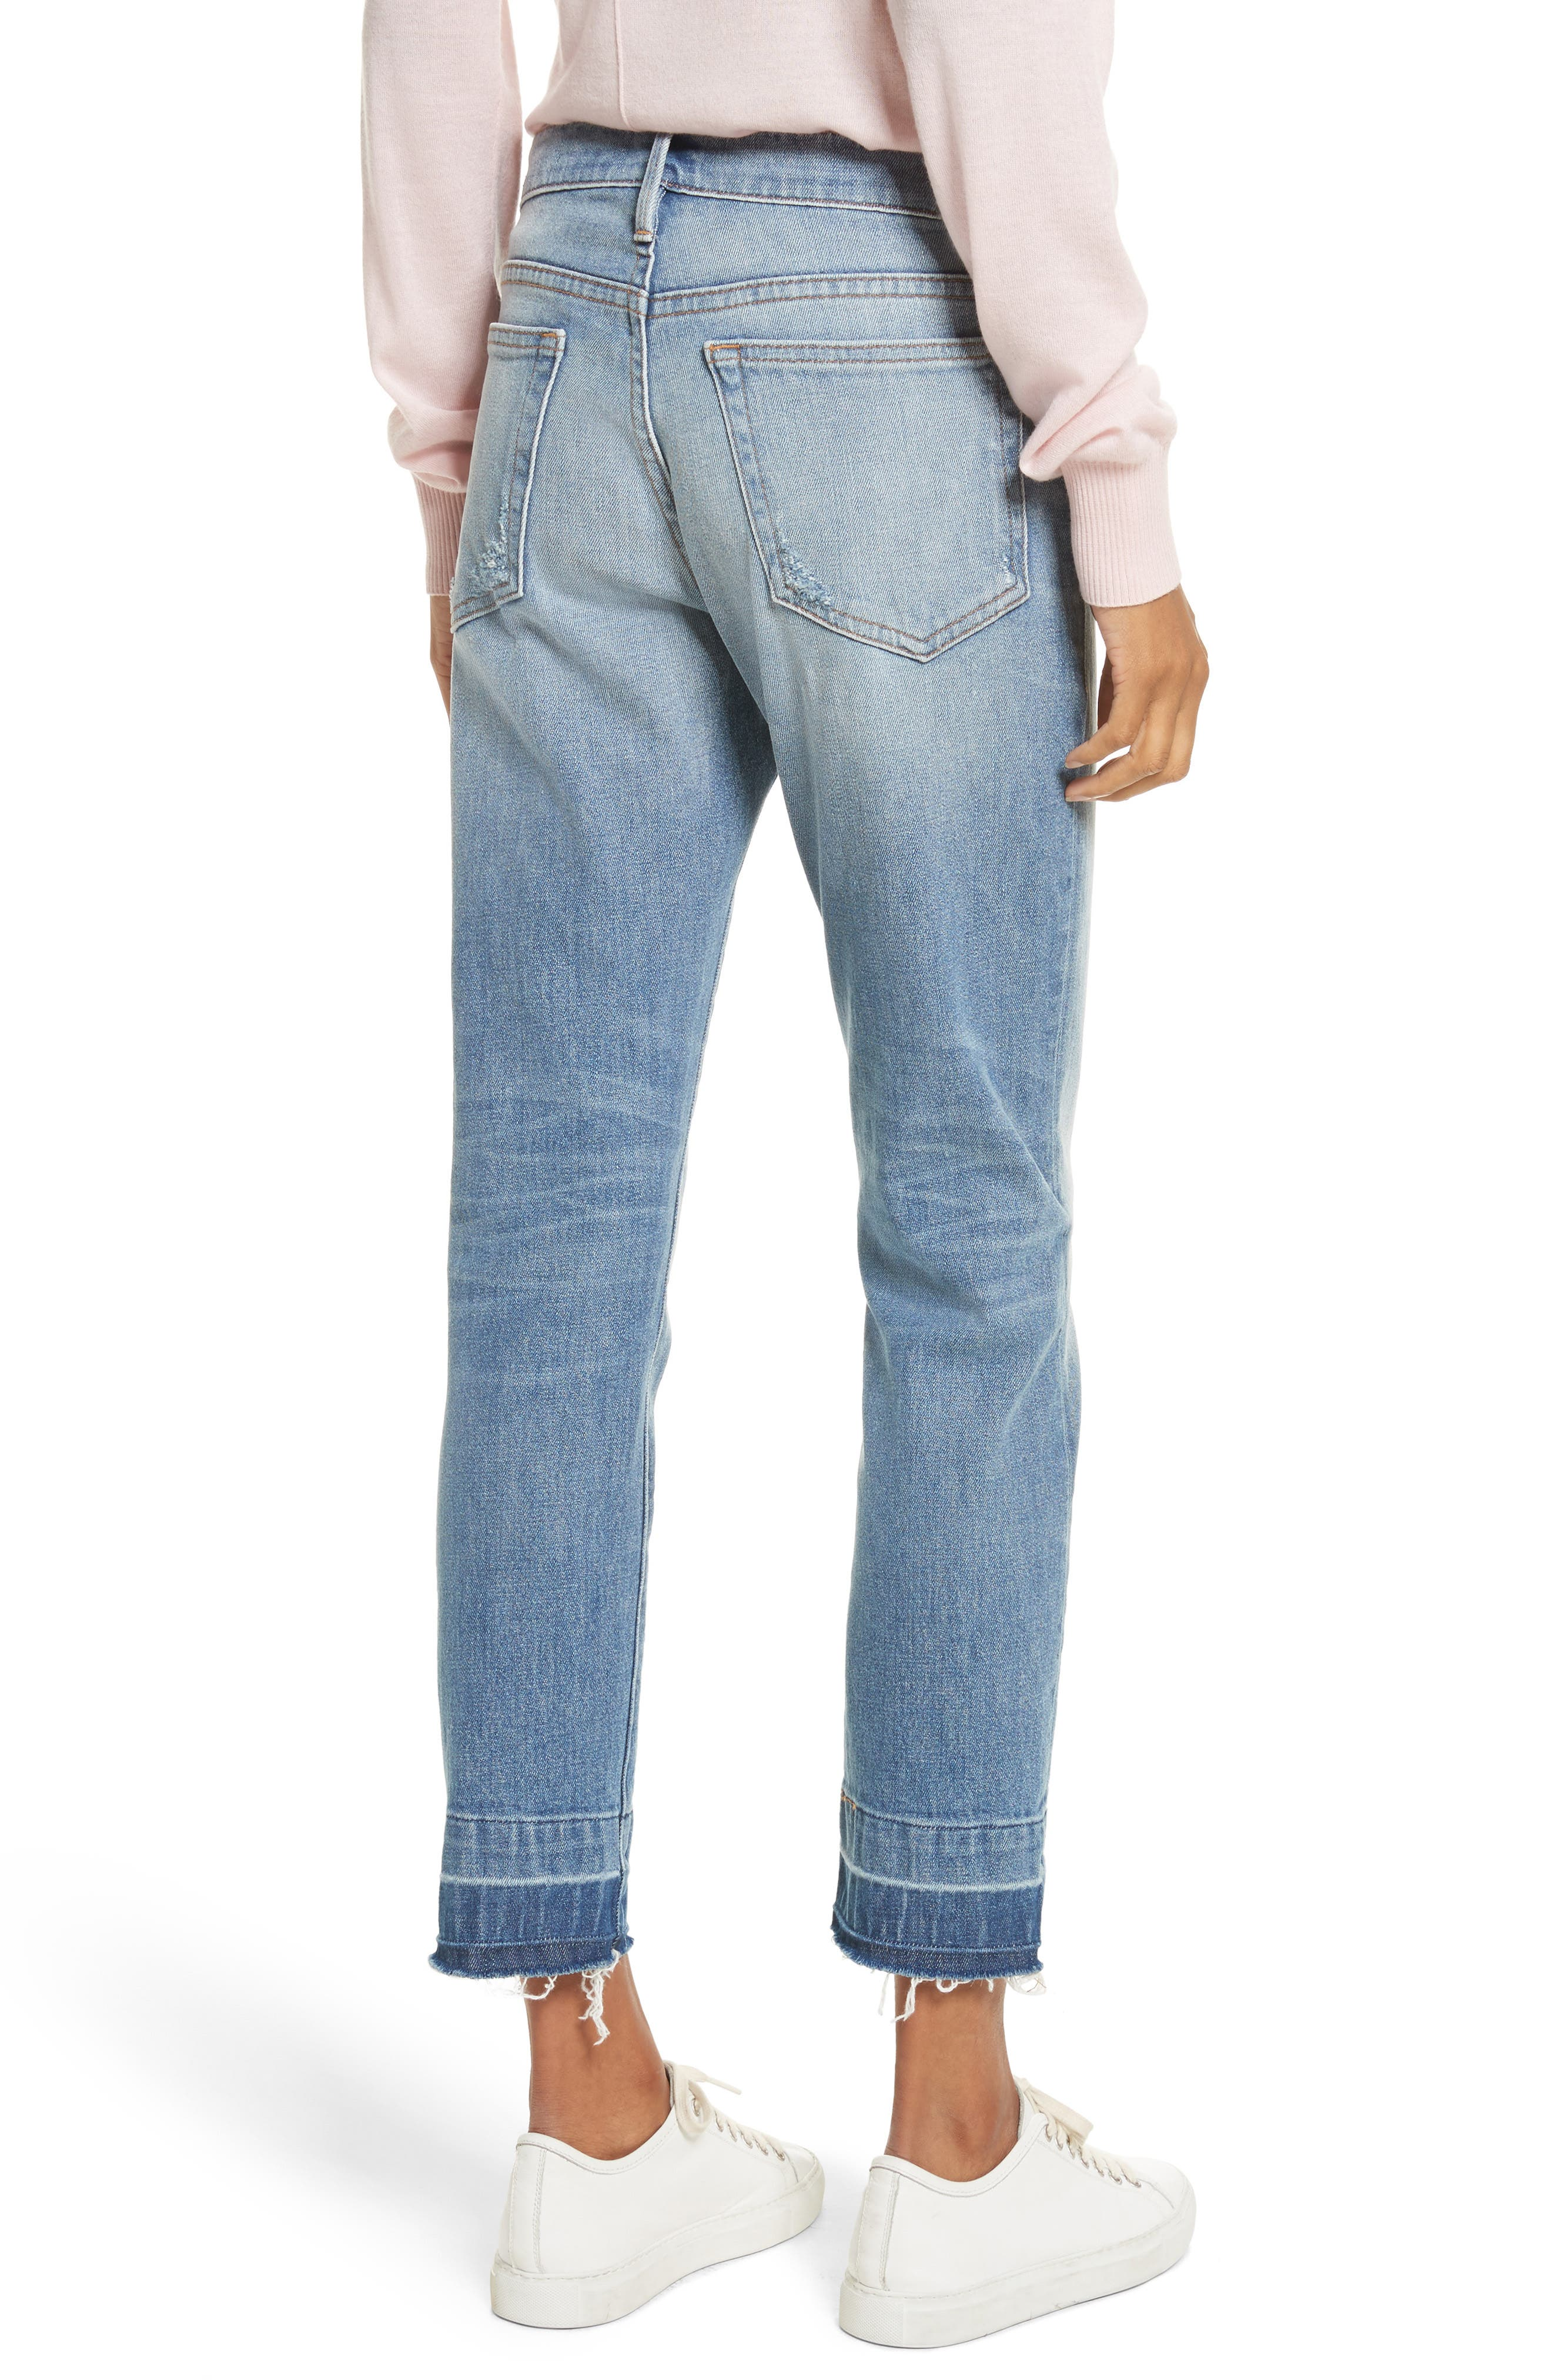 Le Boy Ripped High Waist Jeans,                             Alternate thumbnail 2, color,